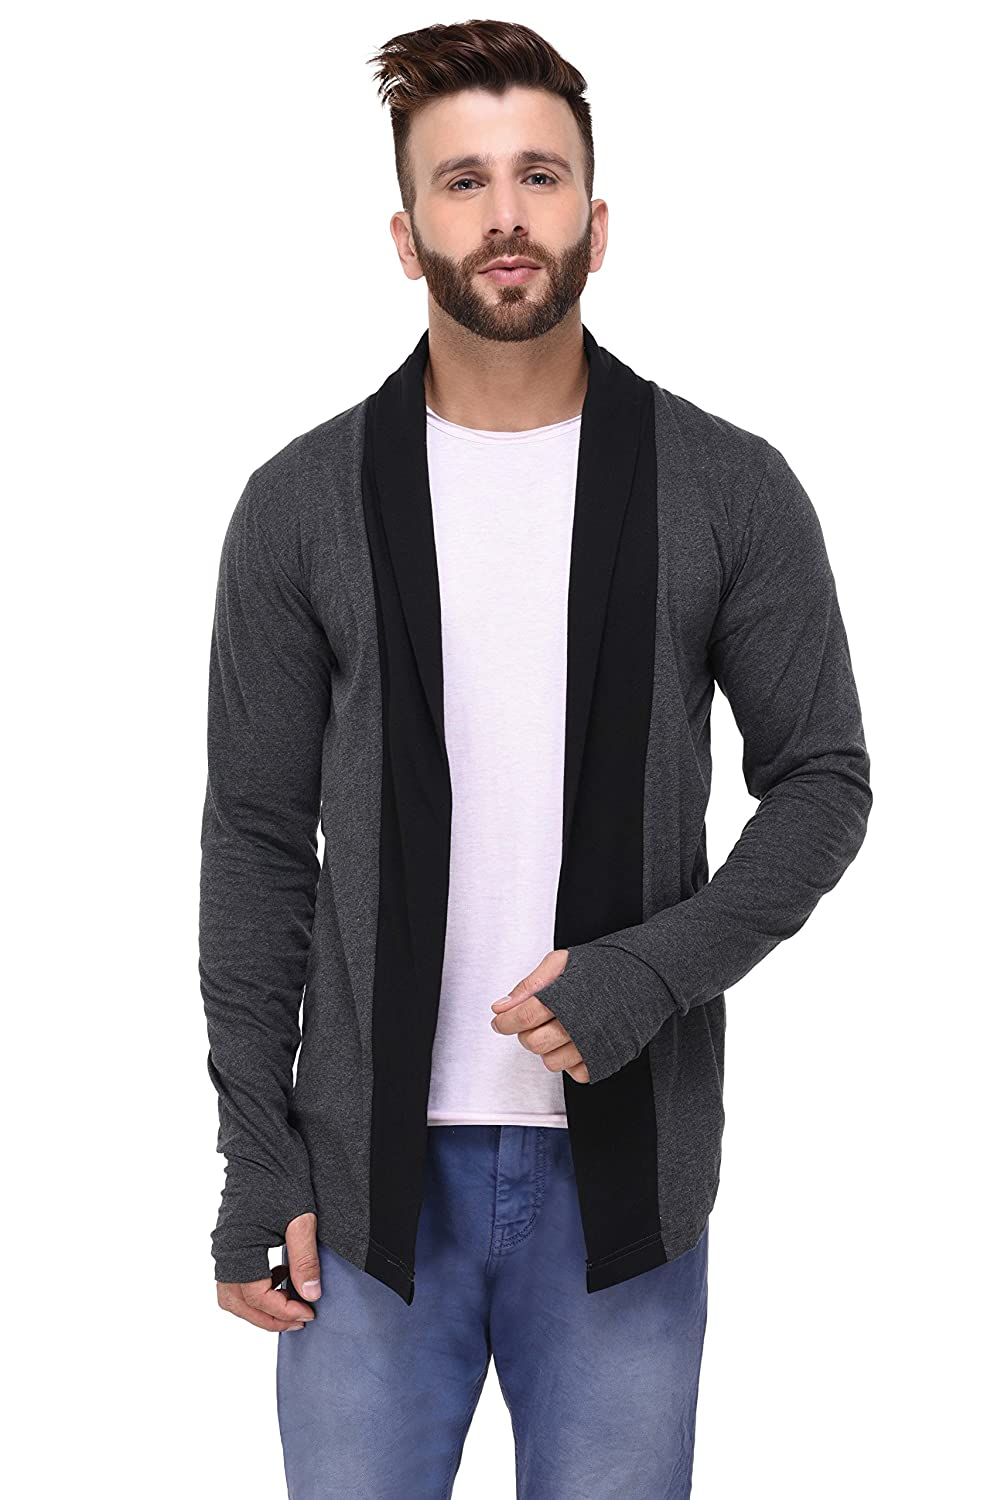 19d51f9a2e Rigo Charcoal with Thumbhole Open Long Cardigan Full Sleeve Shrug for Men